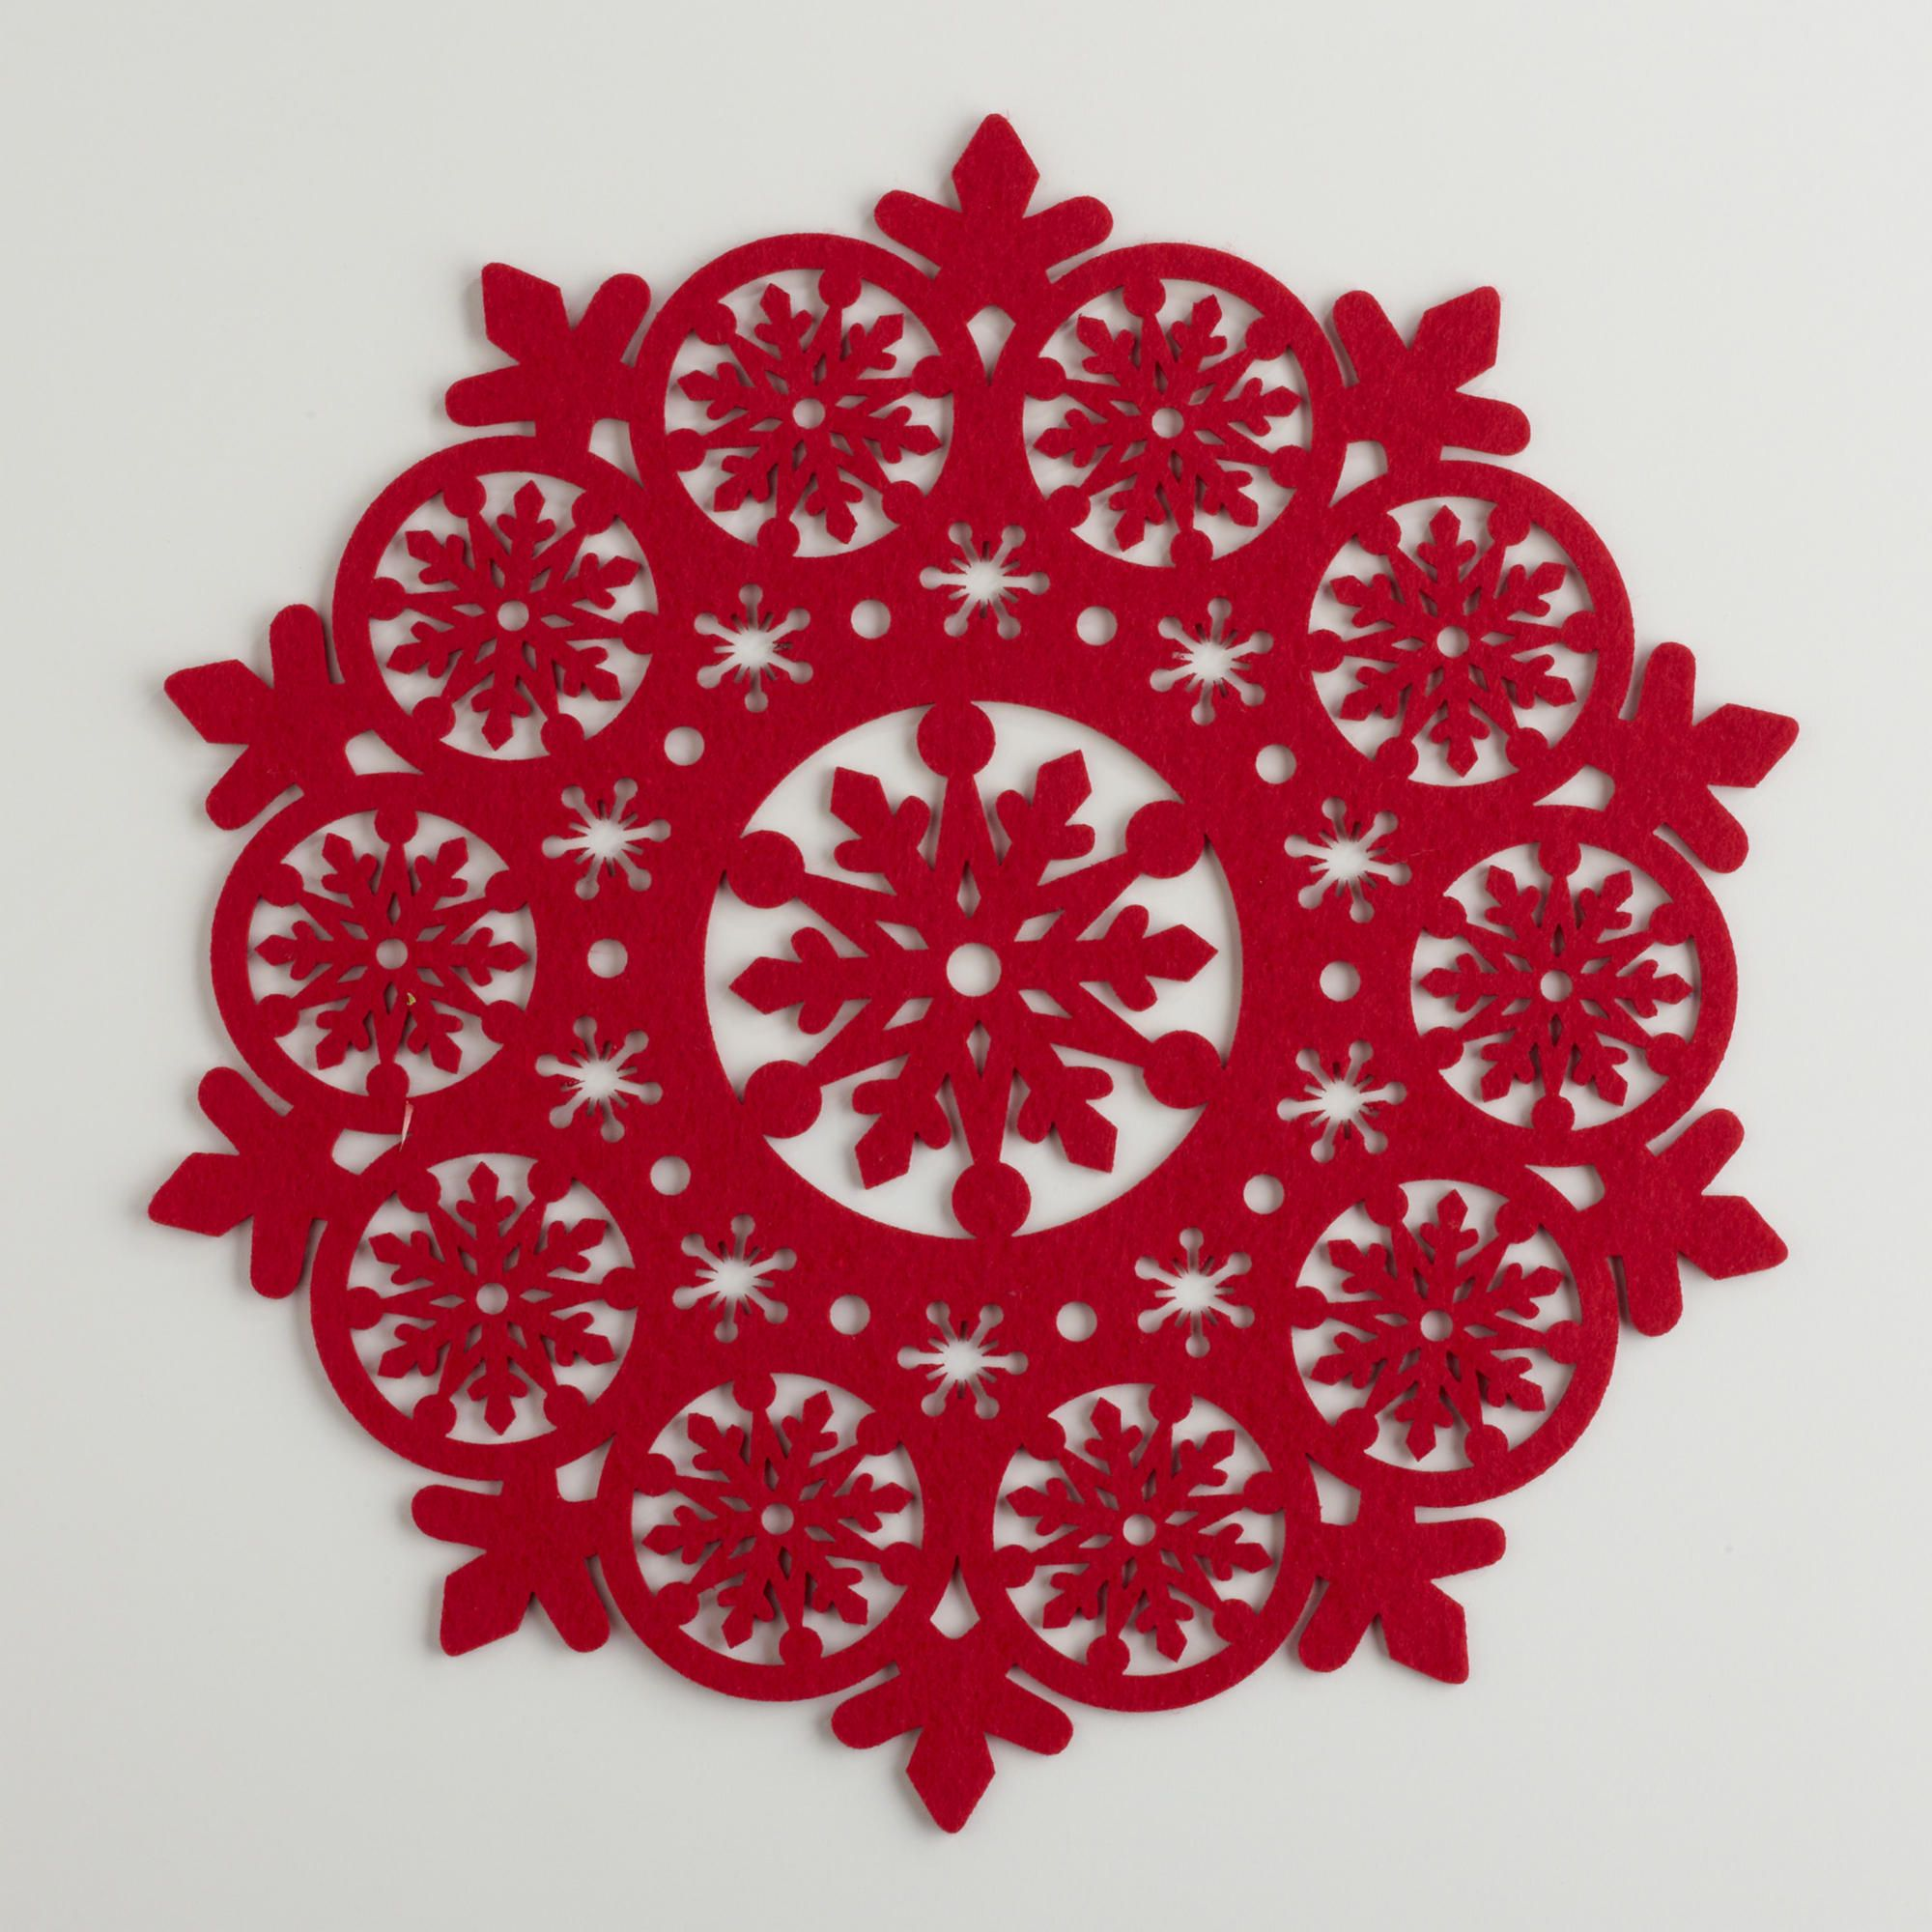 Red Felt Snowflake Placemats, Set of 4 | Red felt, Felting and ...